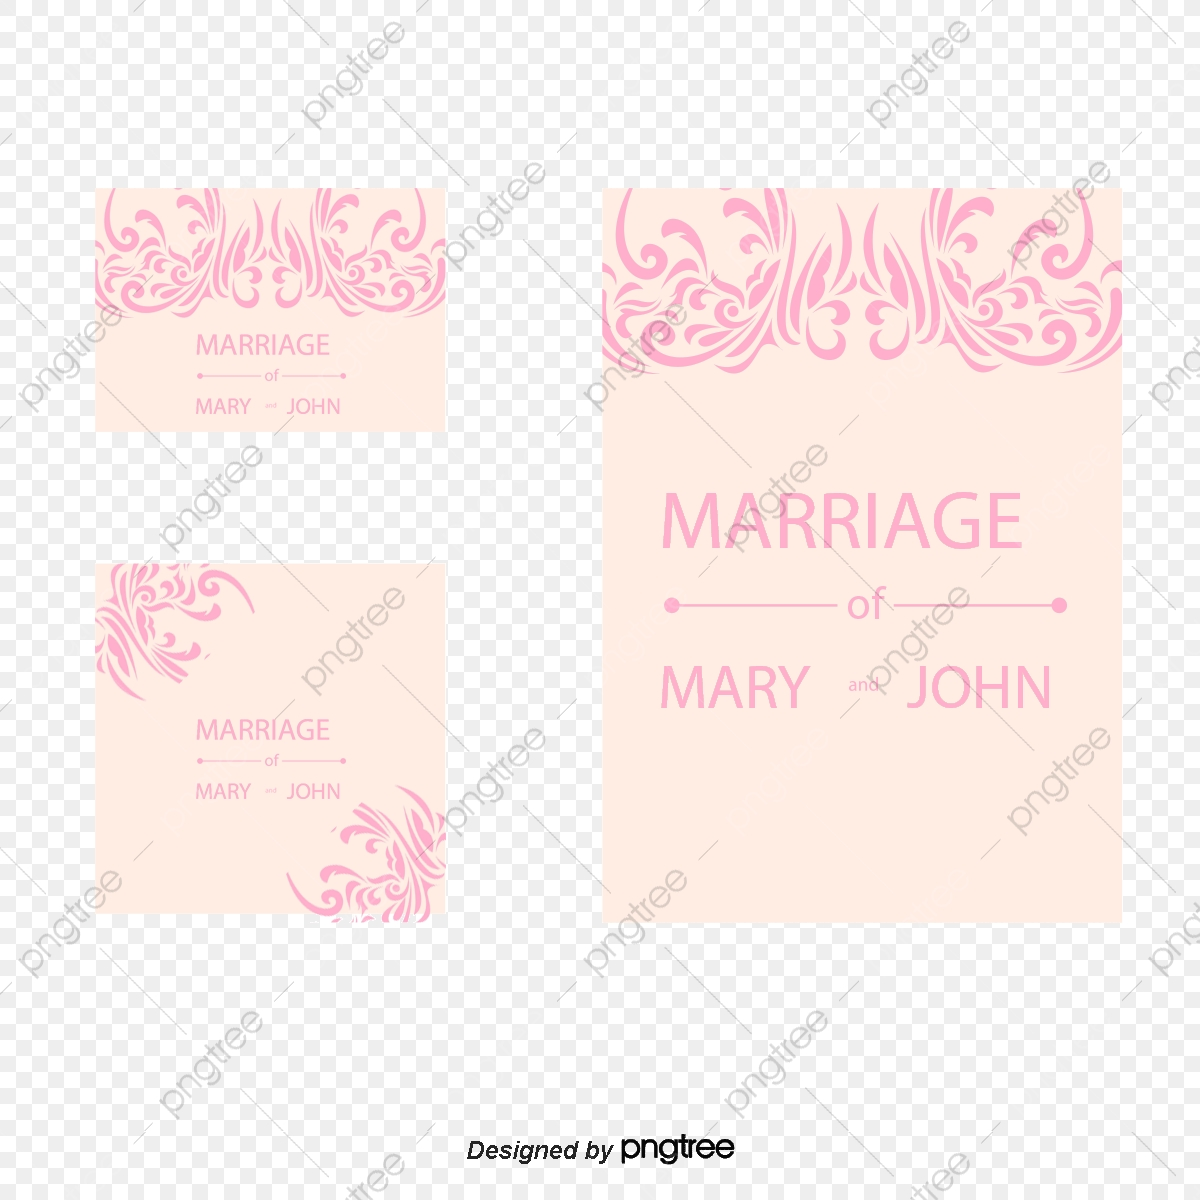 Wedding Invitation Template Free Download Marriage Certificate